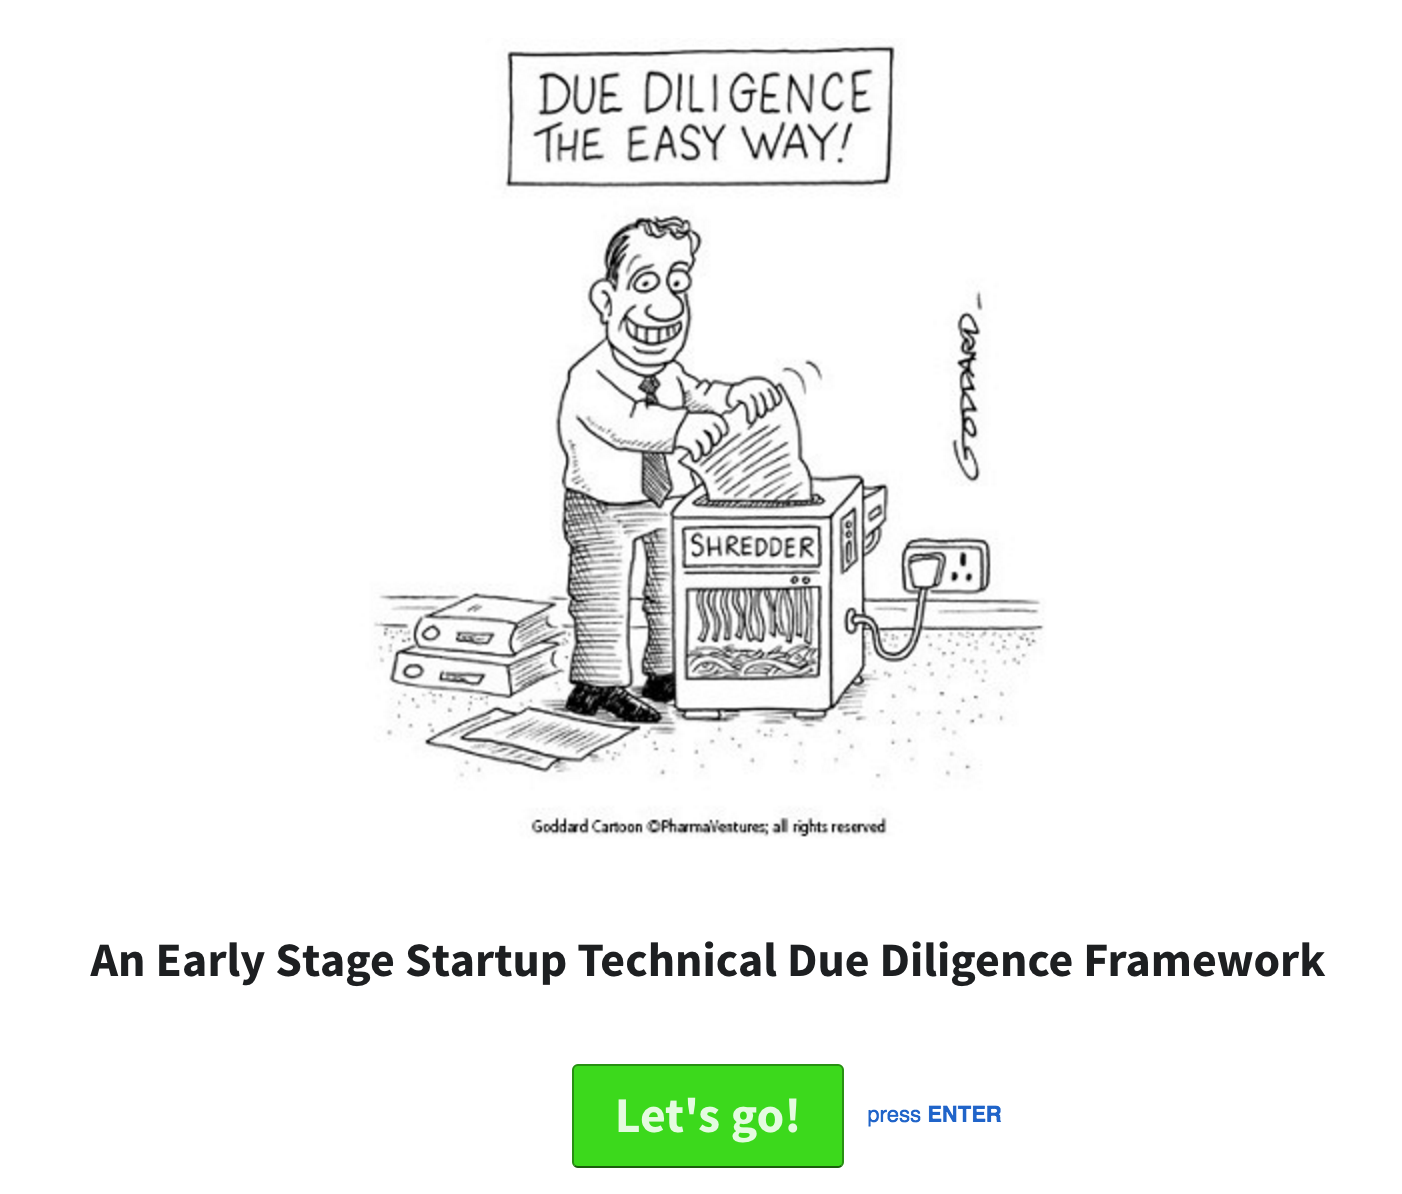 A Technical Due Diligence Framework for Early Stage Startups